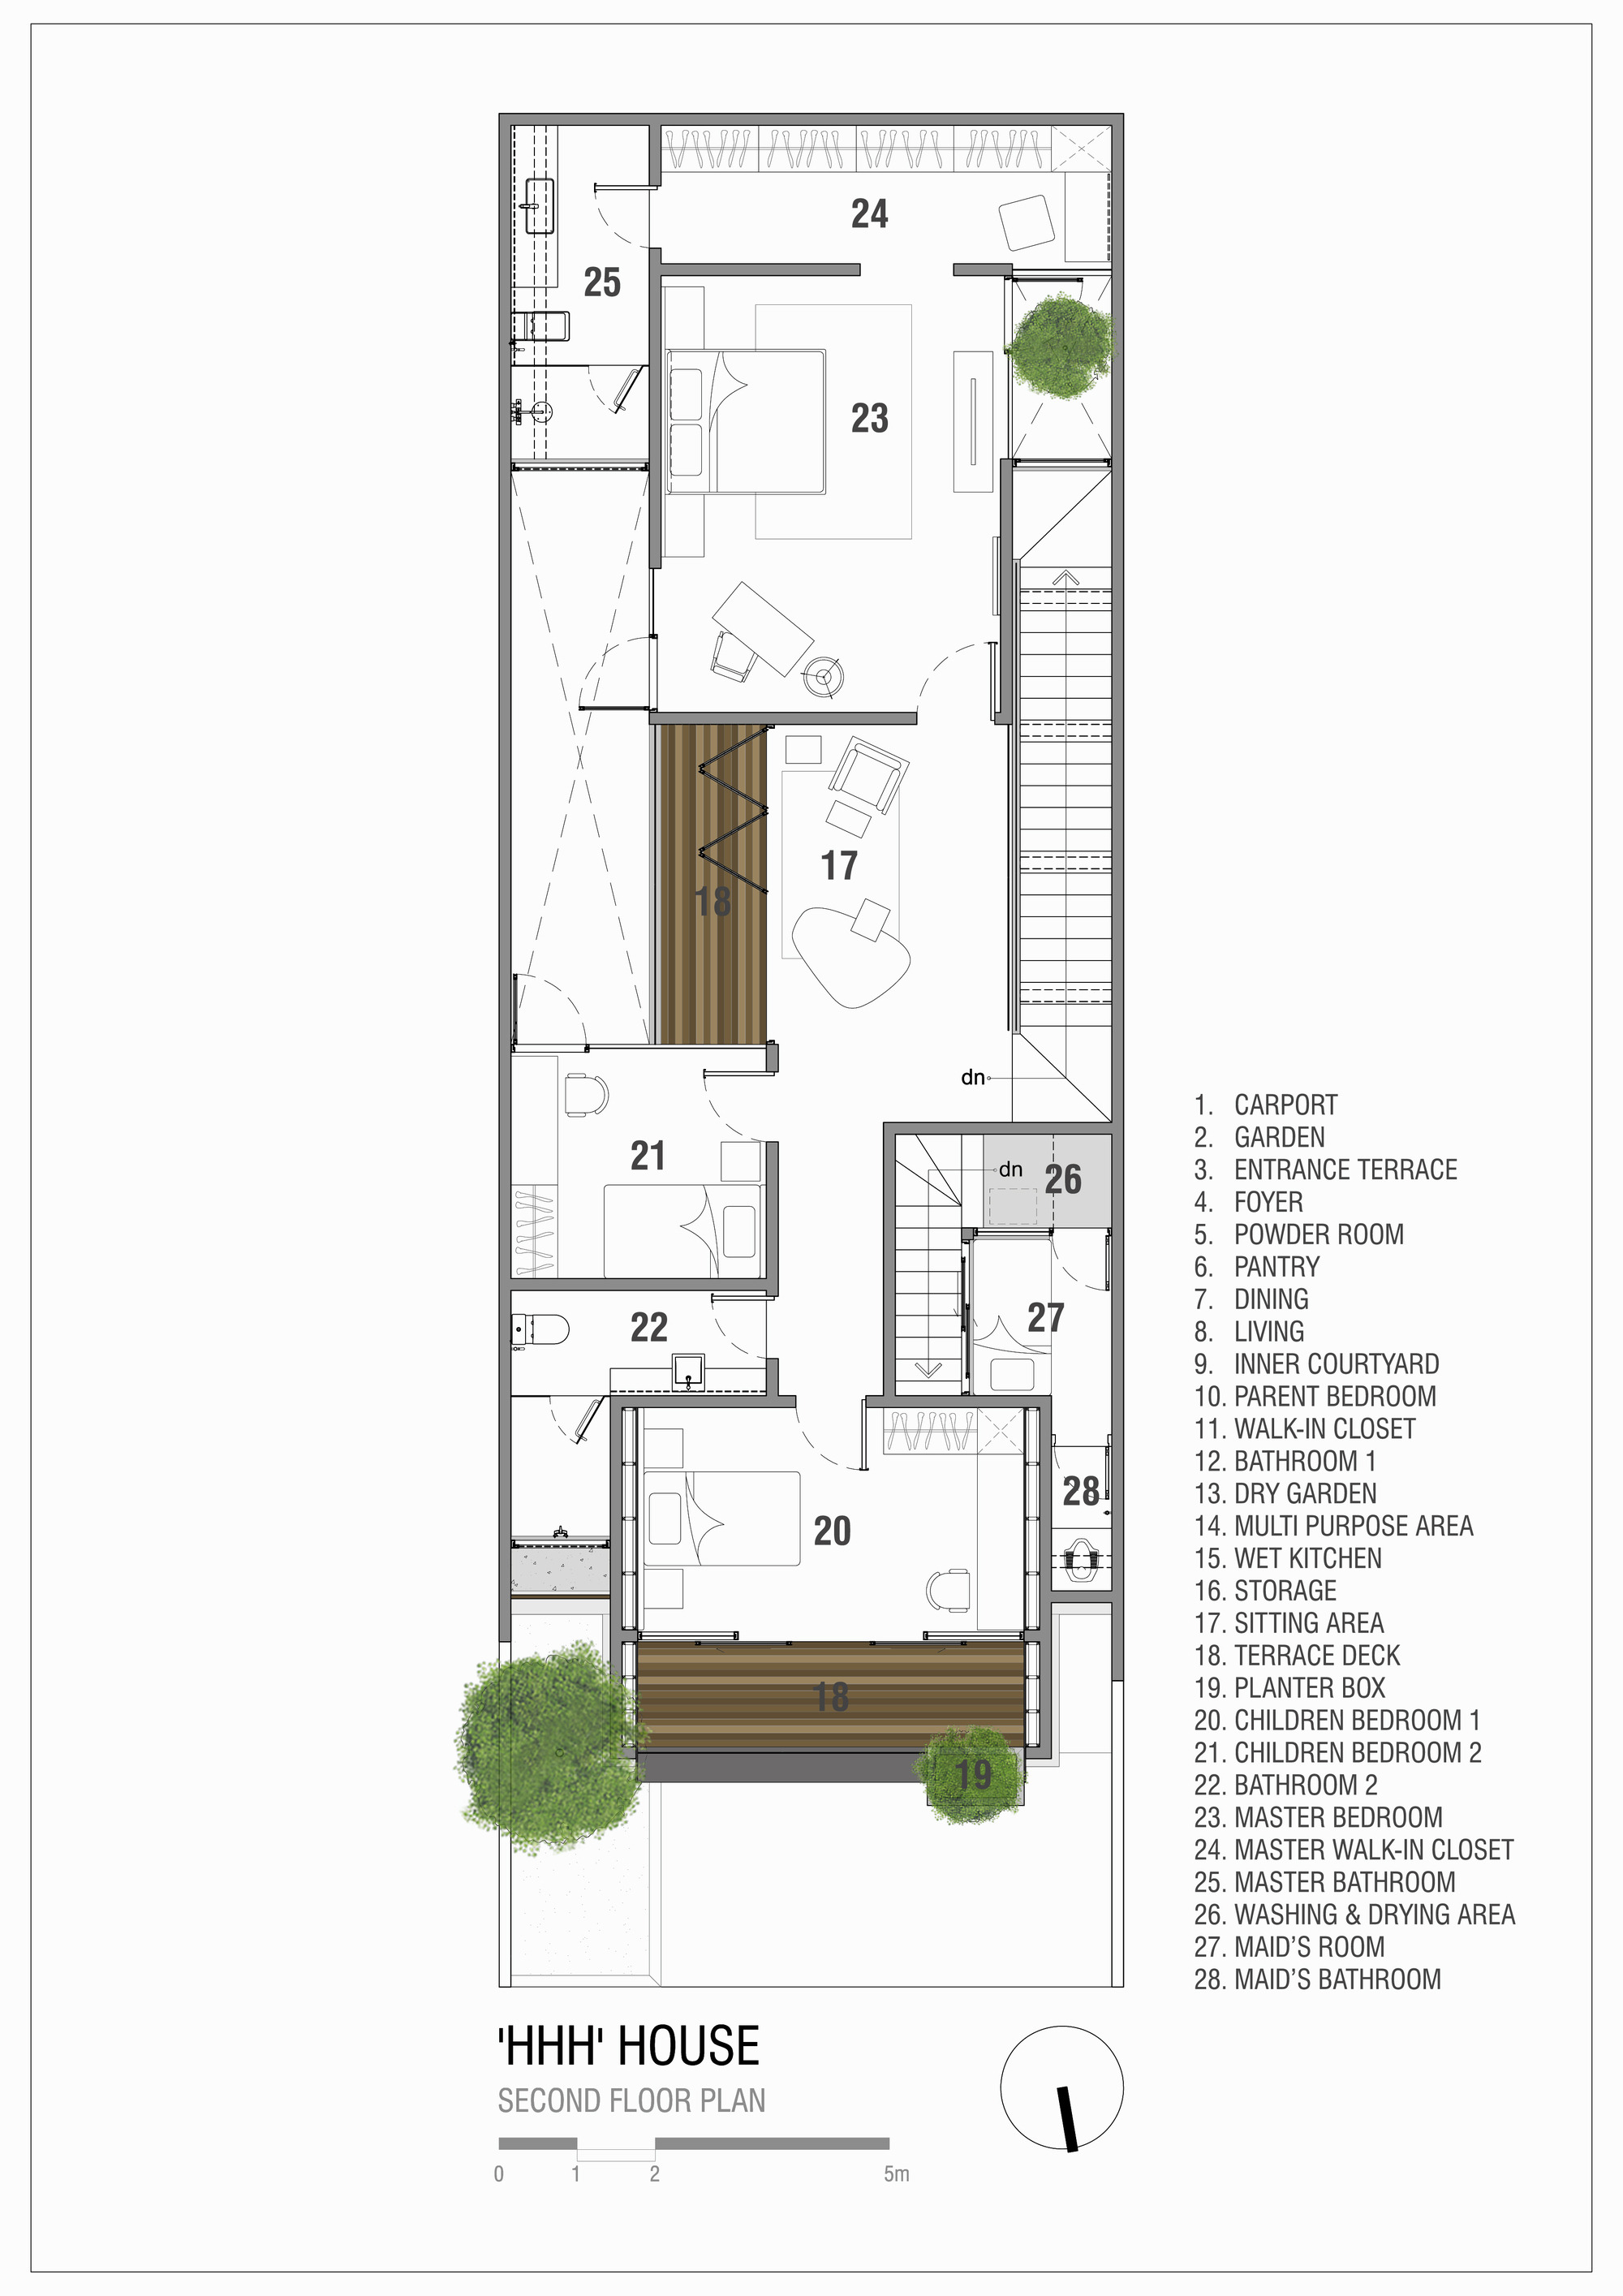 5d1bd3f1284dd1b hhh house simple projects architecture second floor plan